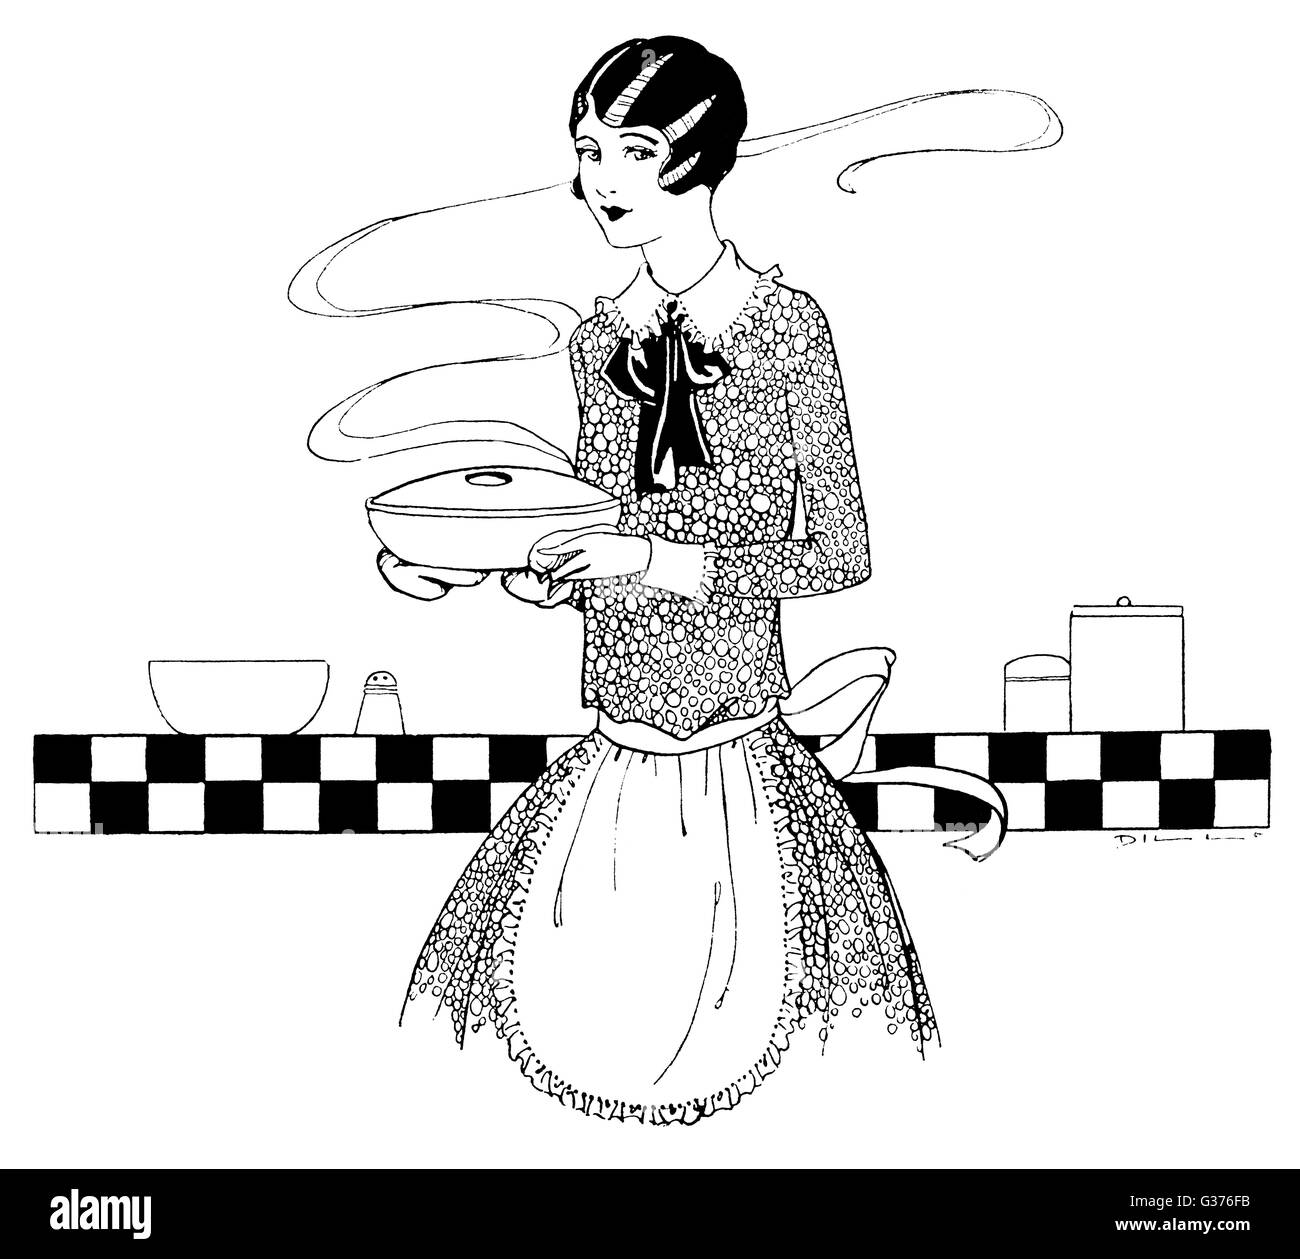 She carries the casserole she  has just prepared and hopes  that people will like it...        Date: 1927 - Stock Image